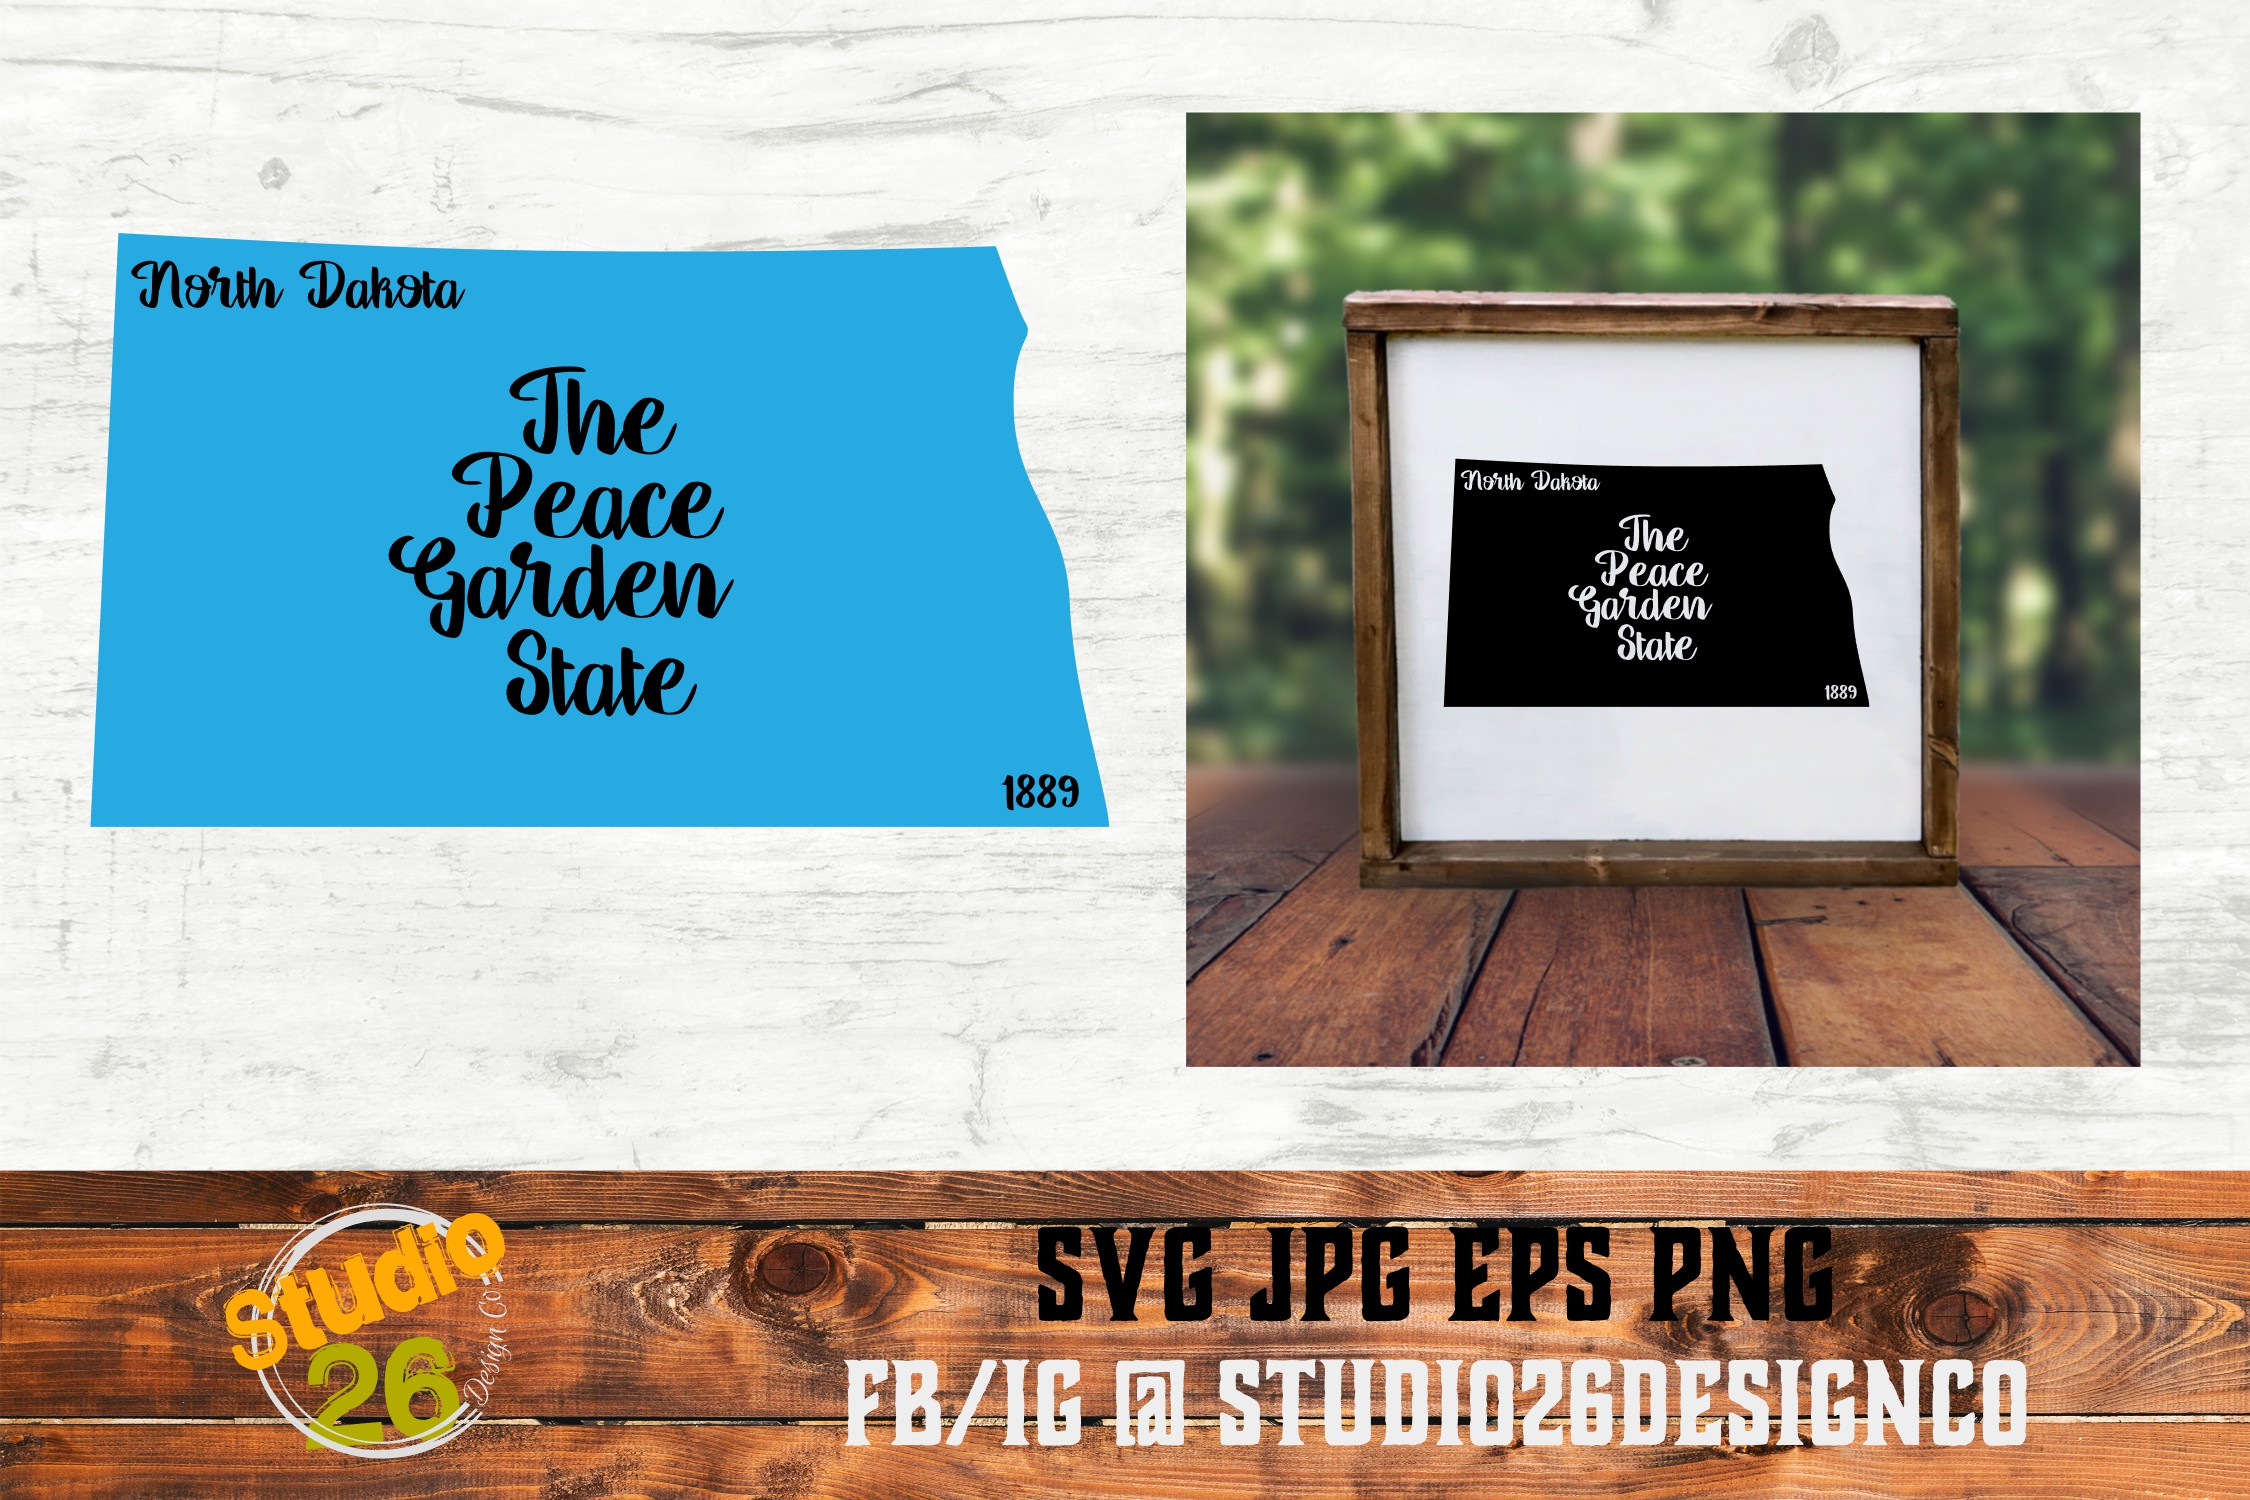 Download Free North Dakota State Nickname Graphic By Studio 26 Design Co for Cricut Explore, Silhouette and other cutting machines.